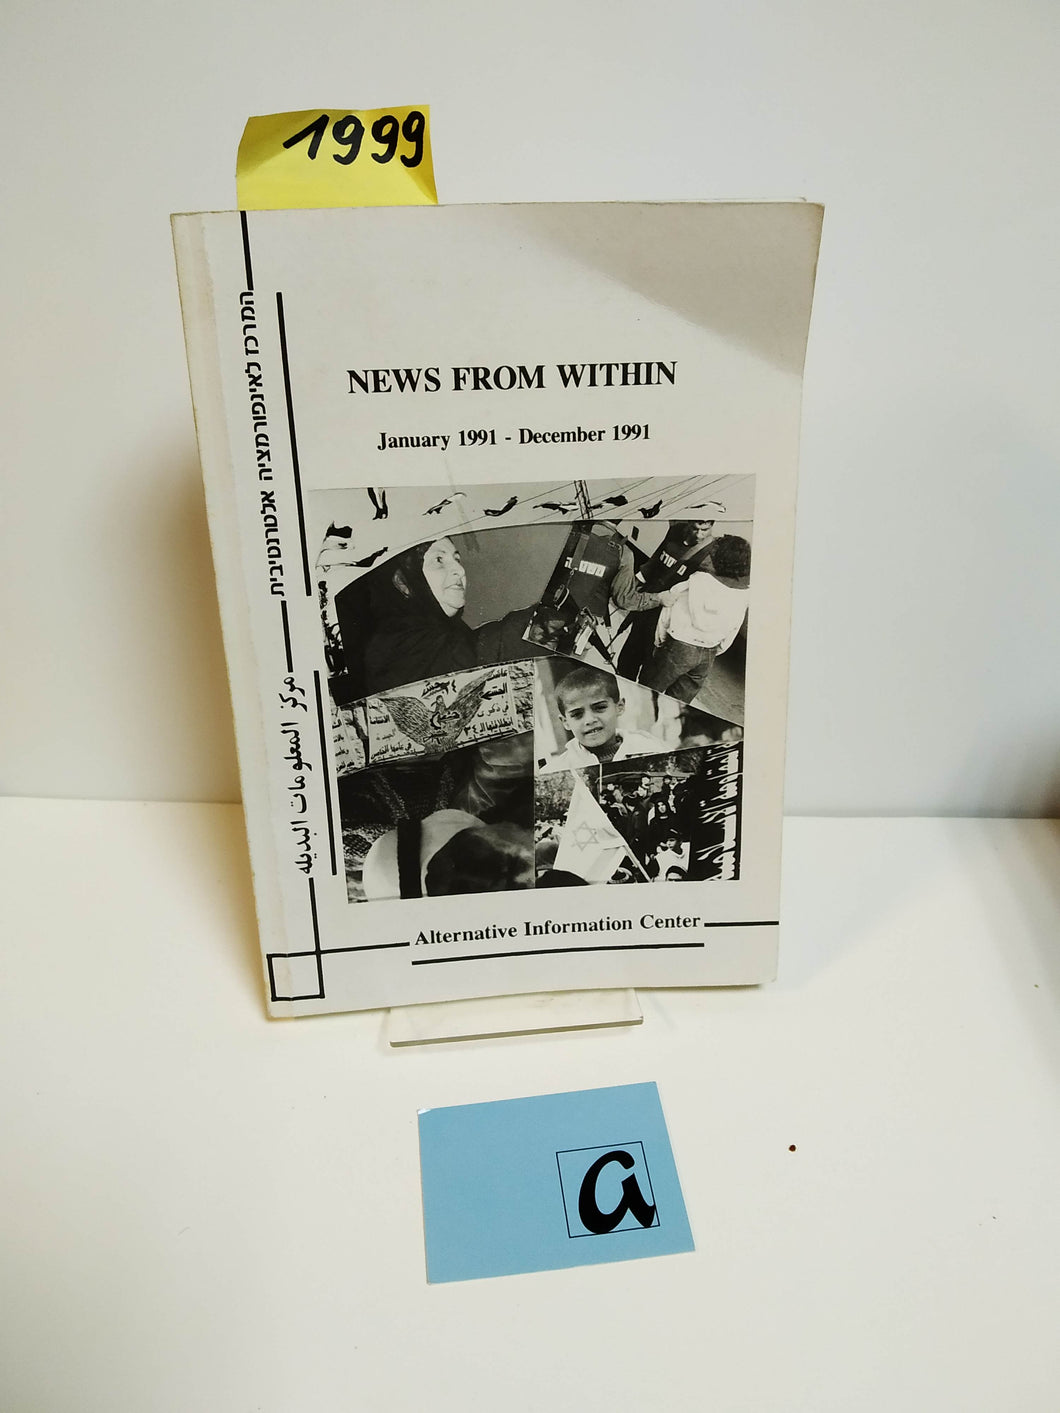 News From Within - Januar 1991 bis Dezember 1991